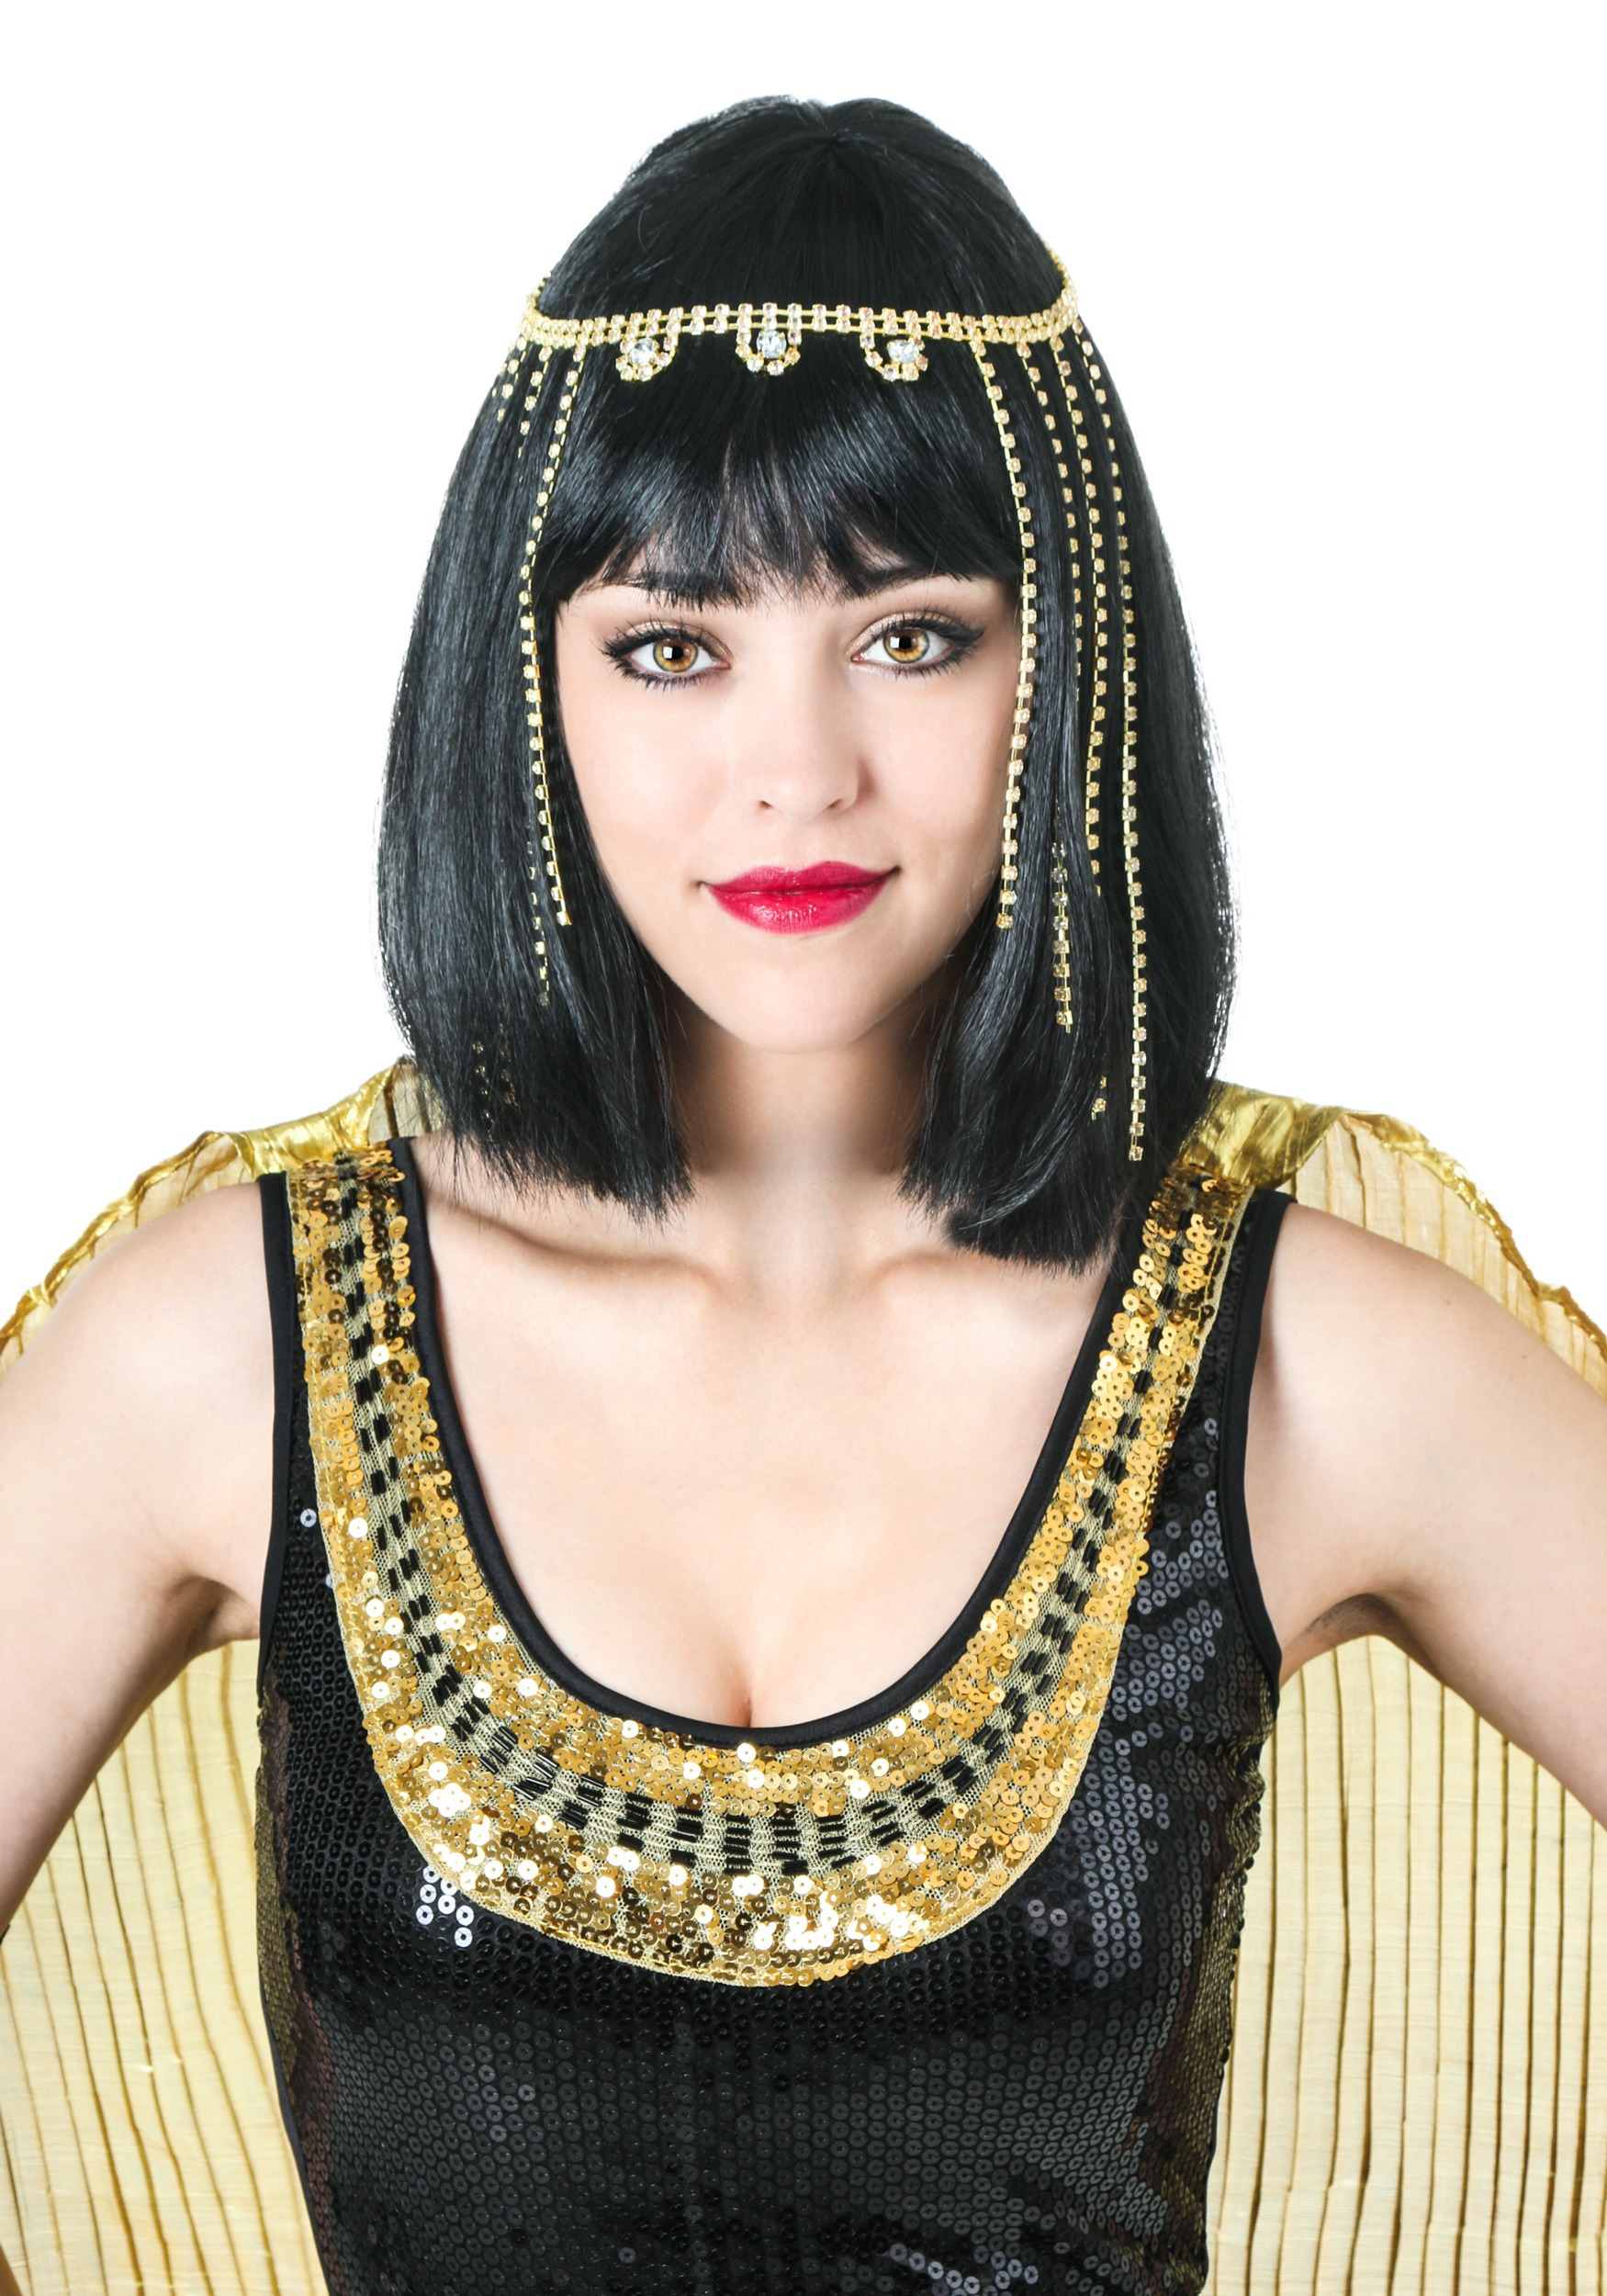 INOpets.com Anything for Pets Parents & Their Pets Deluxe Cleopatra Wig